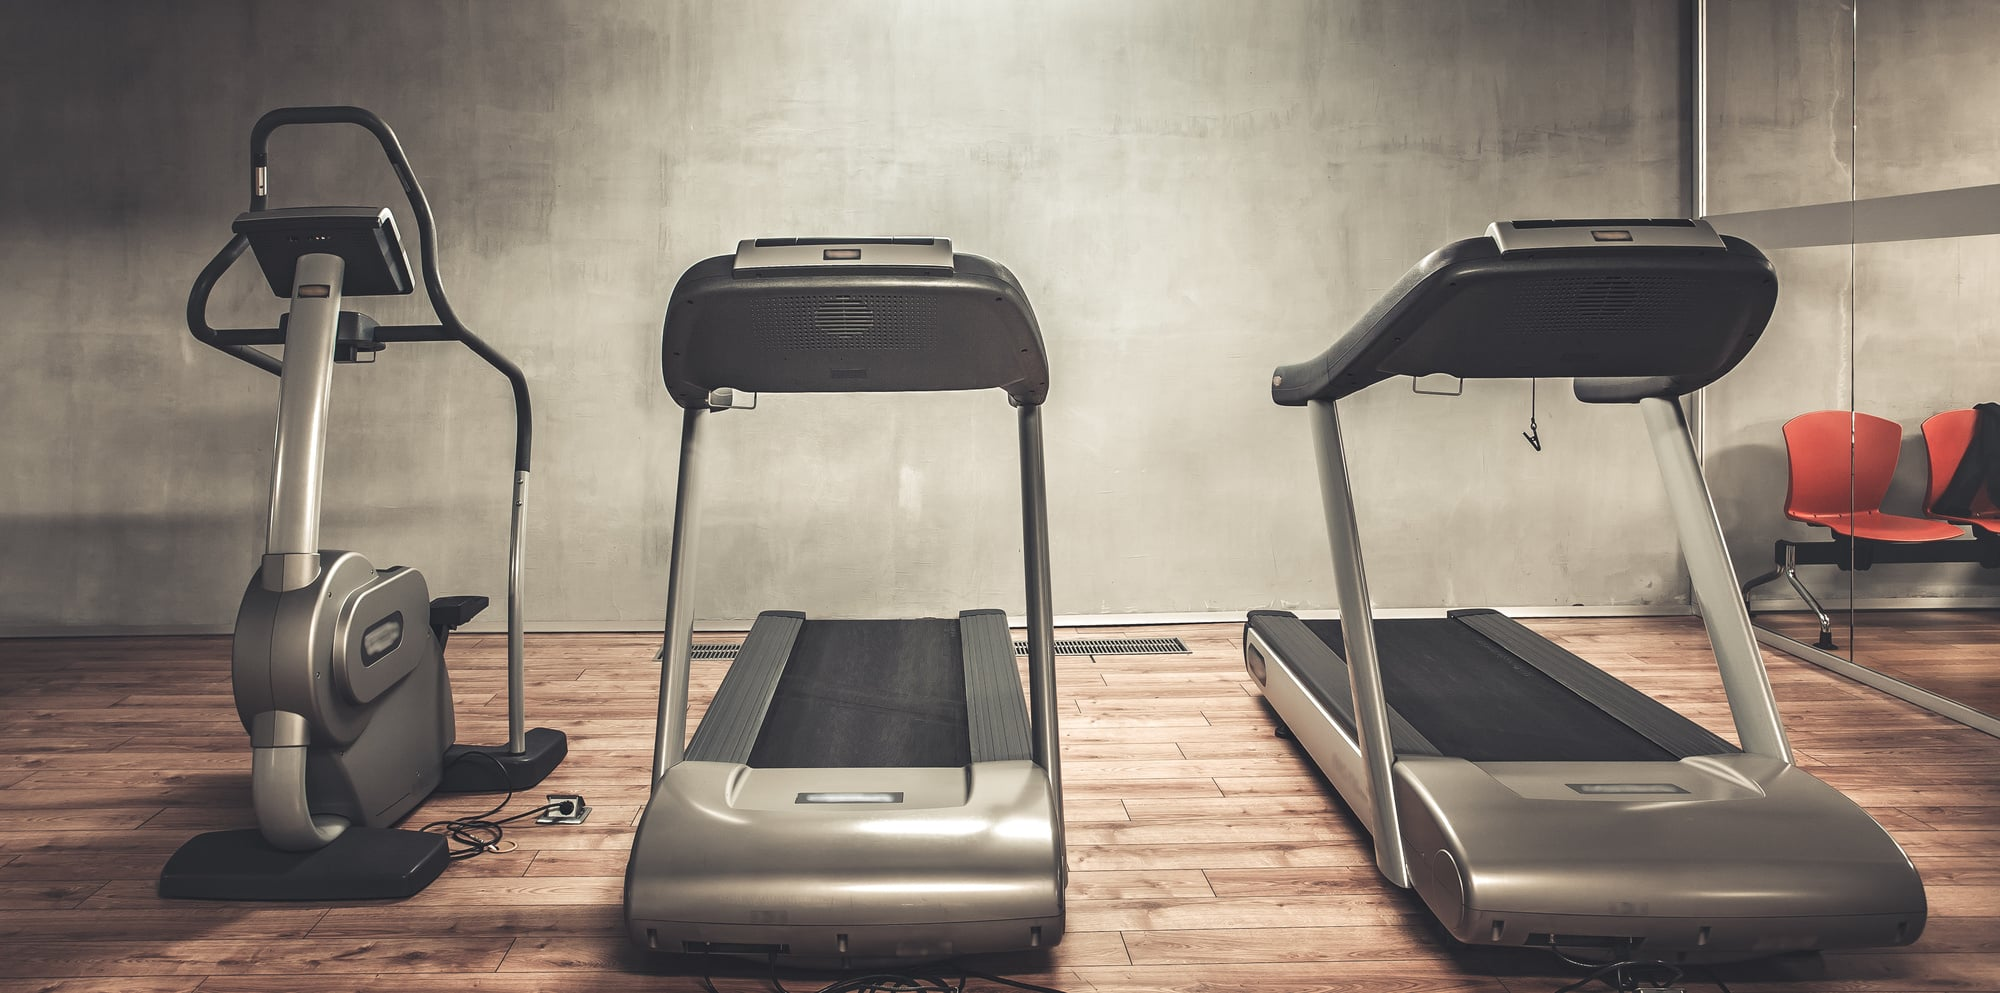 10 coolest cardio machines for your home gym